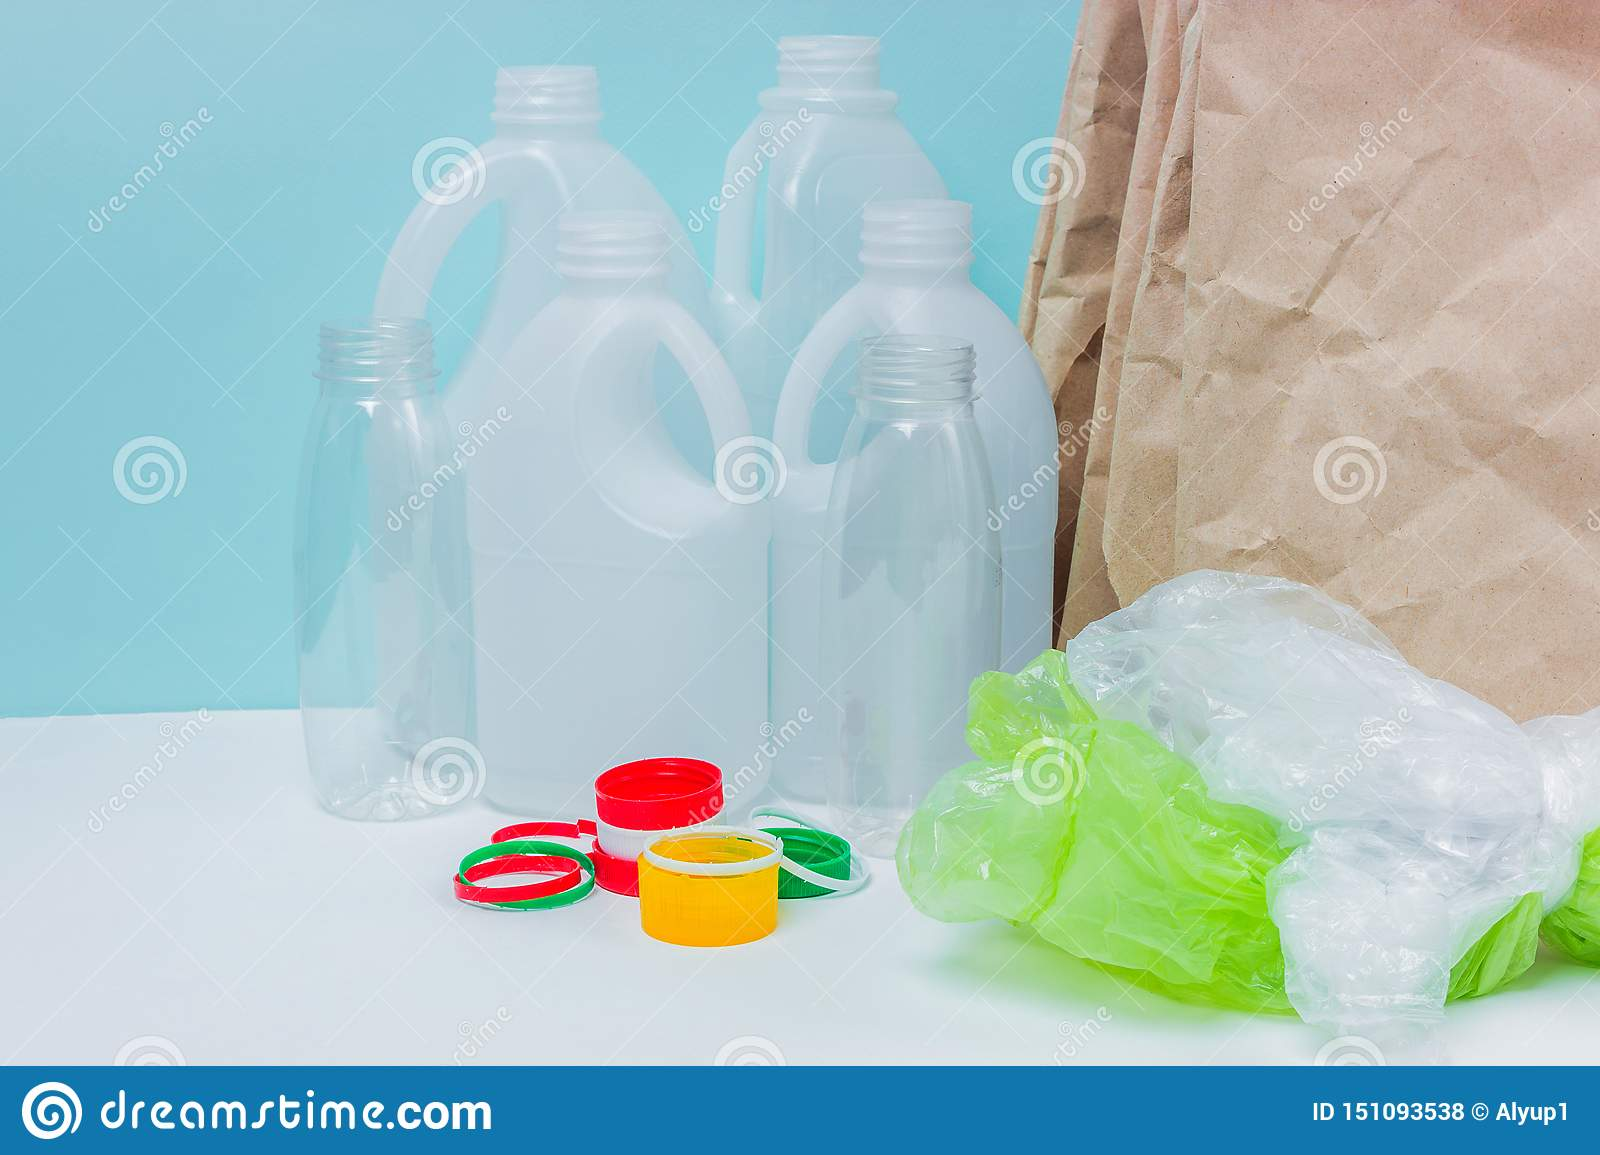 Recyclable materials on blue background.